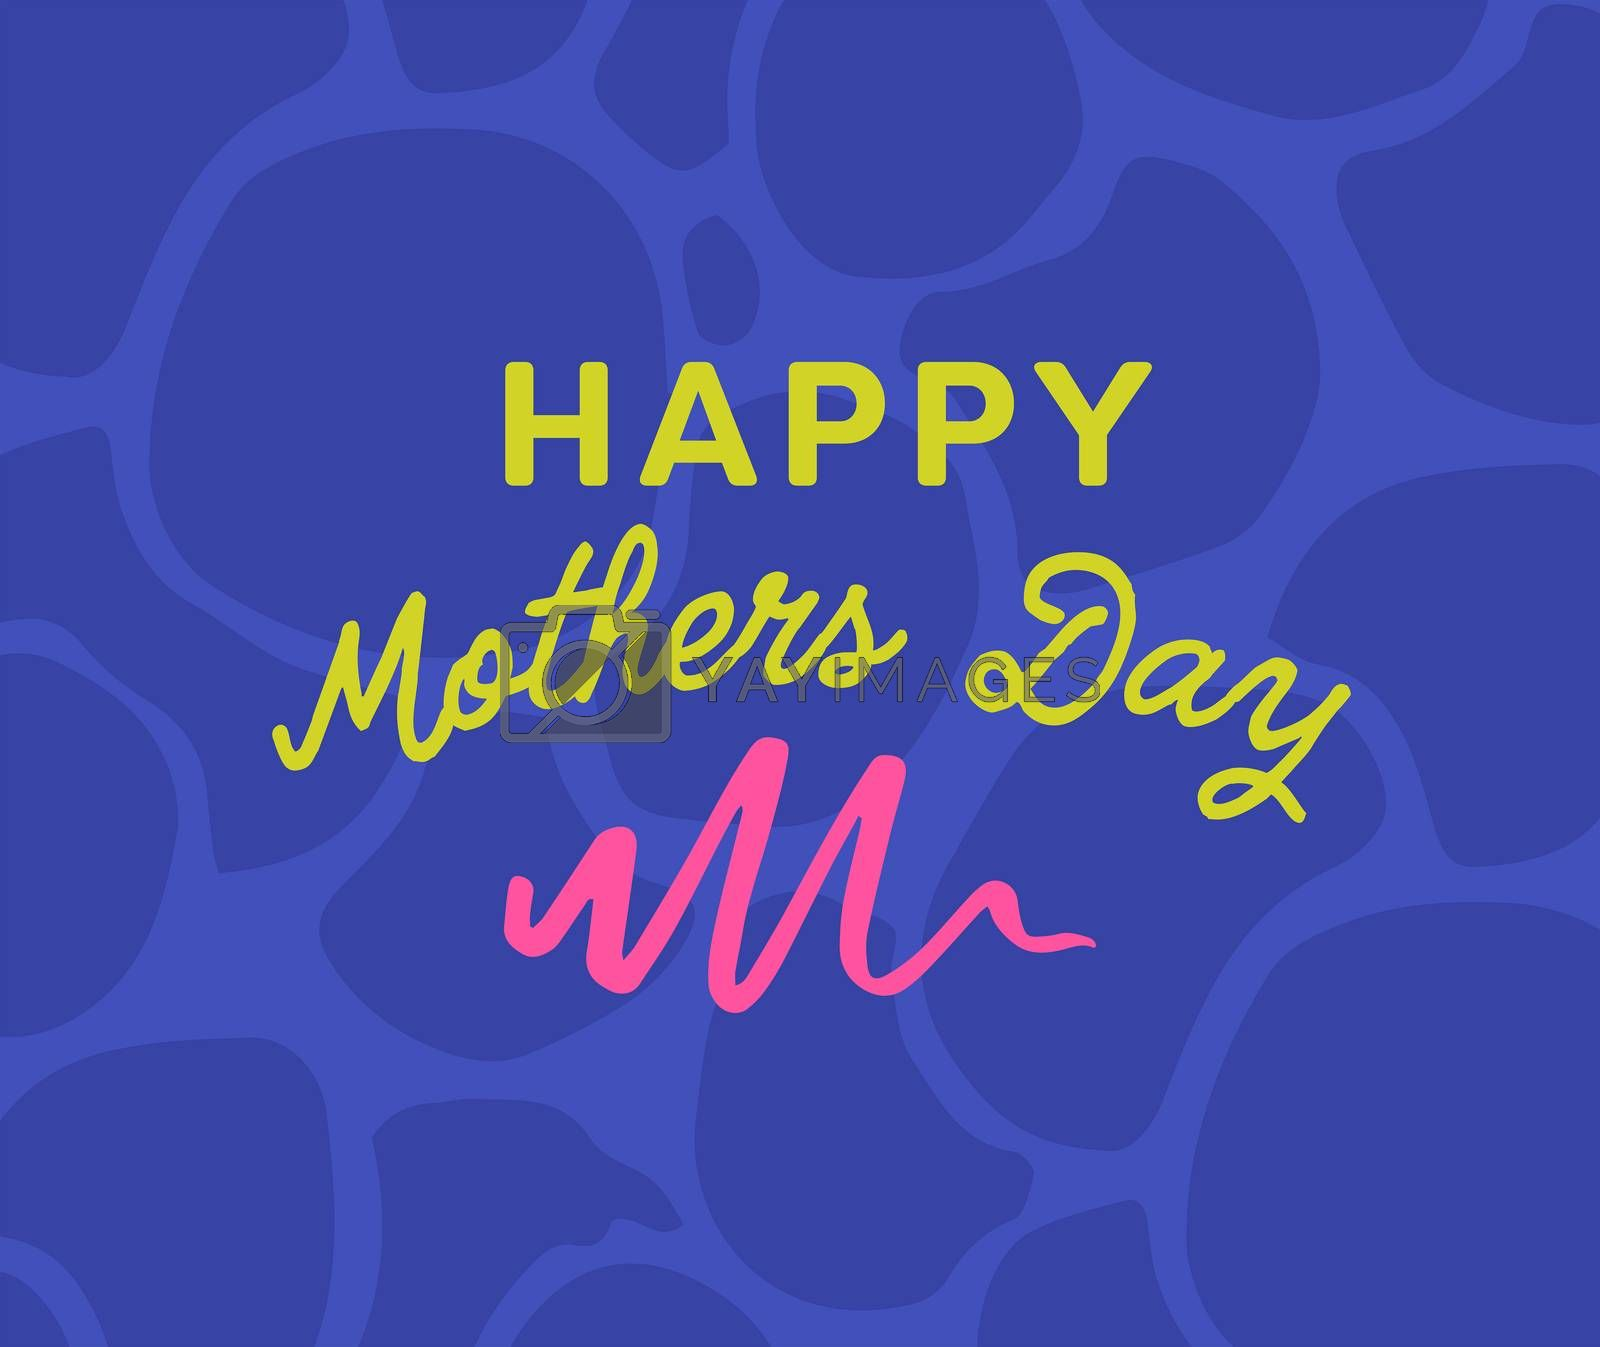 Vector of mothers day card with happy mothers day message